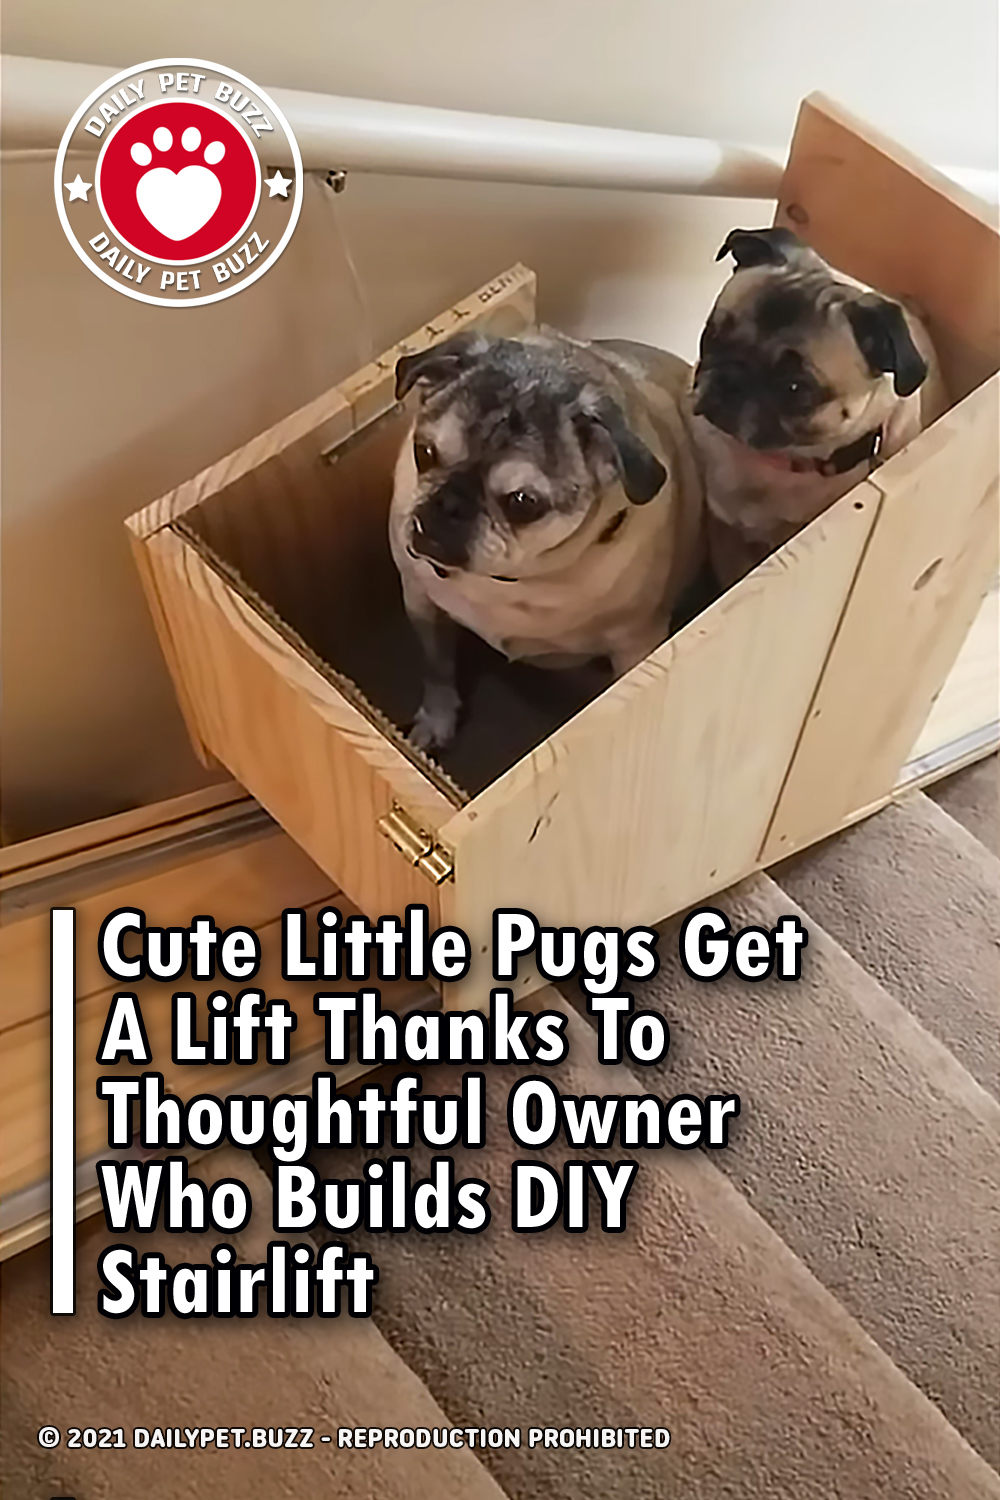 Cute Little Pugs Get A Lift Thanks To Thoughtful Owner Who Builds DIY Stairlift